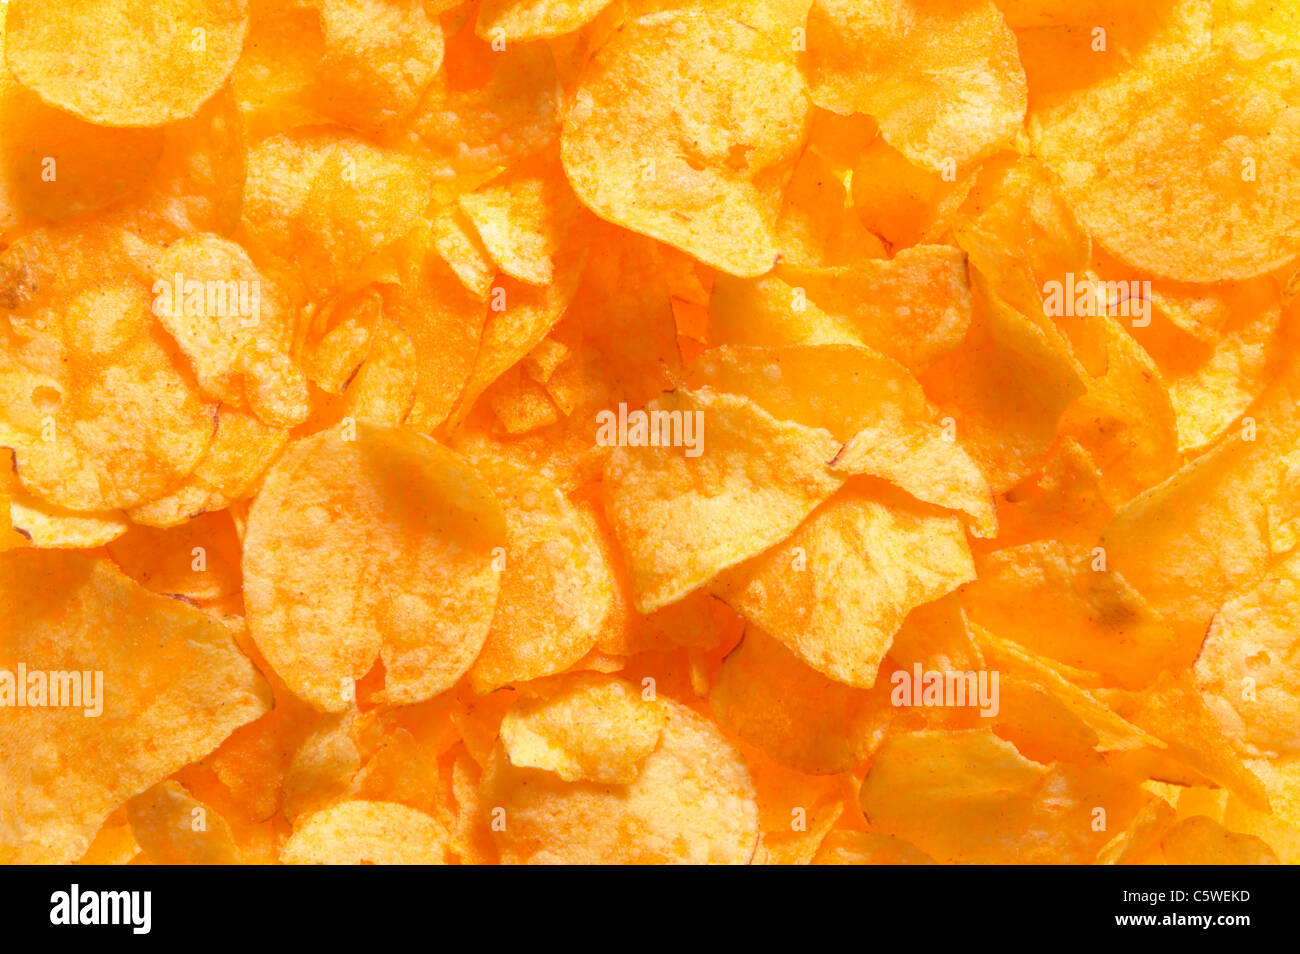 Patatas fritas, full frame, close-up Imagen De Stock